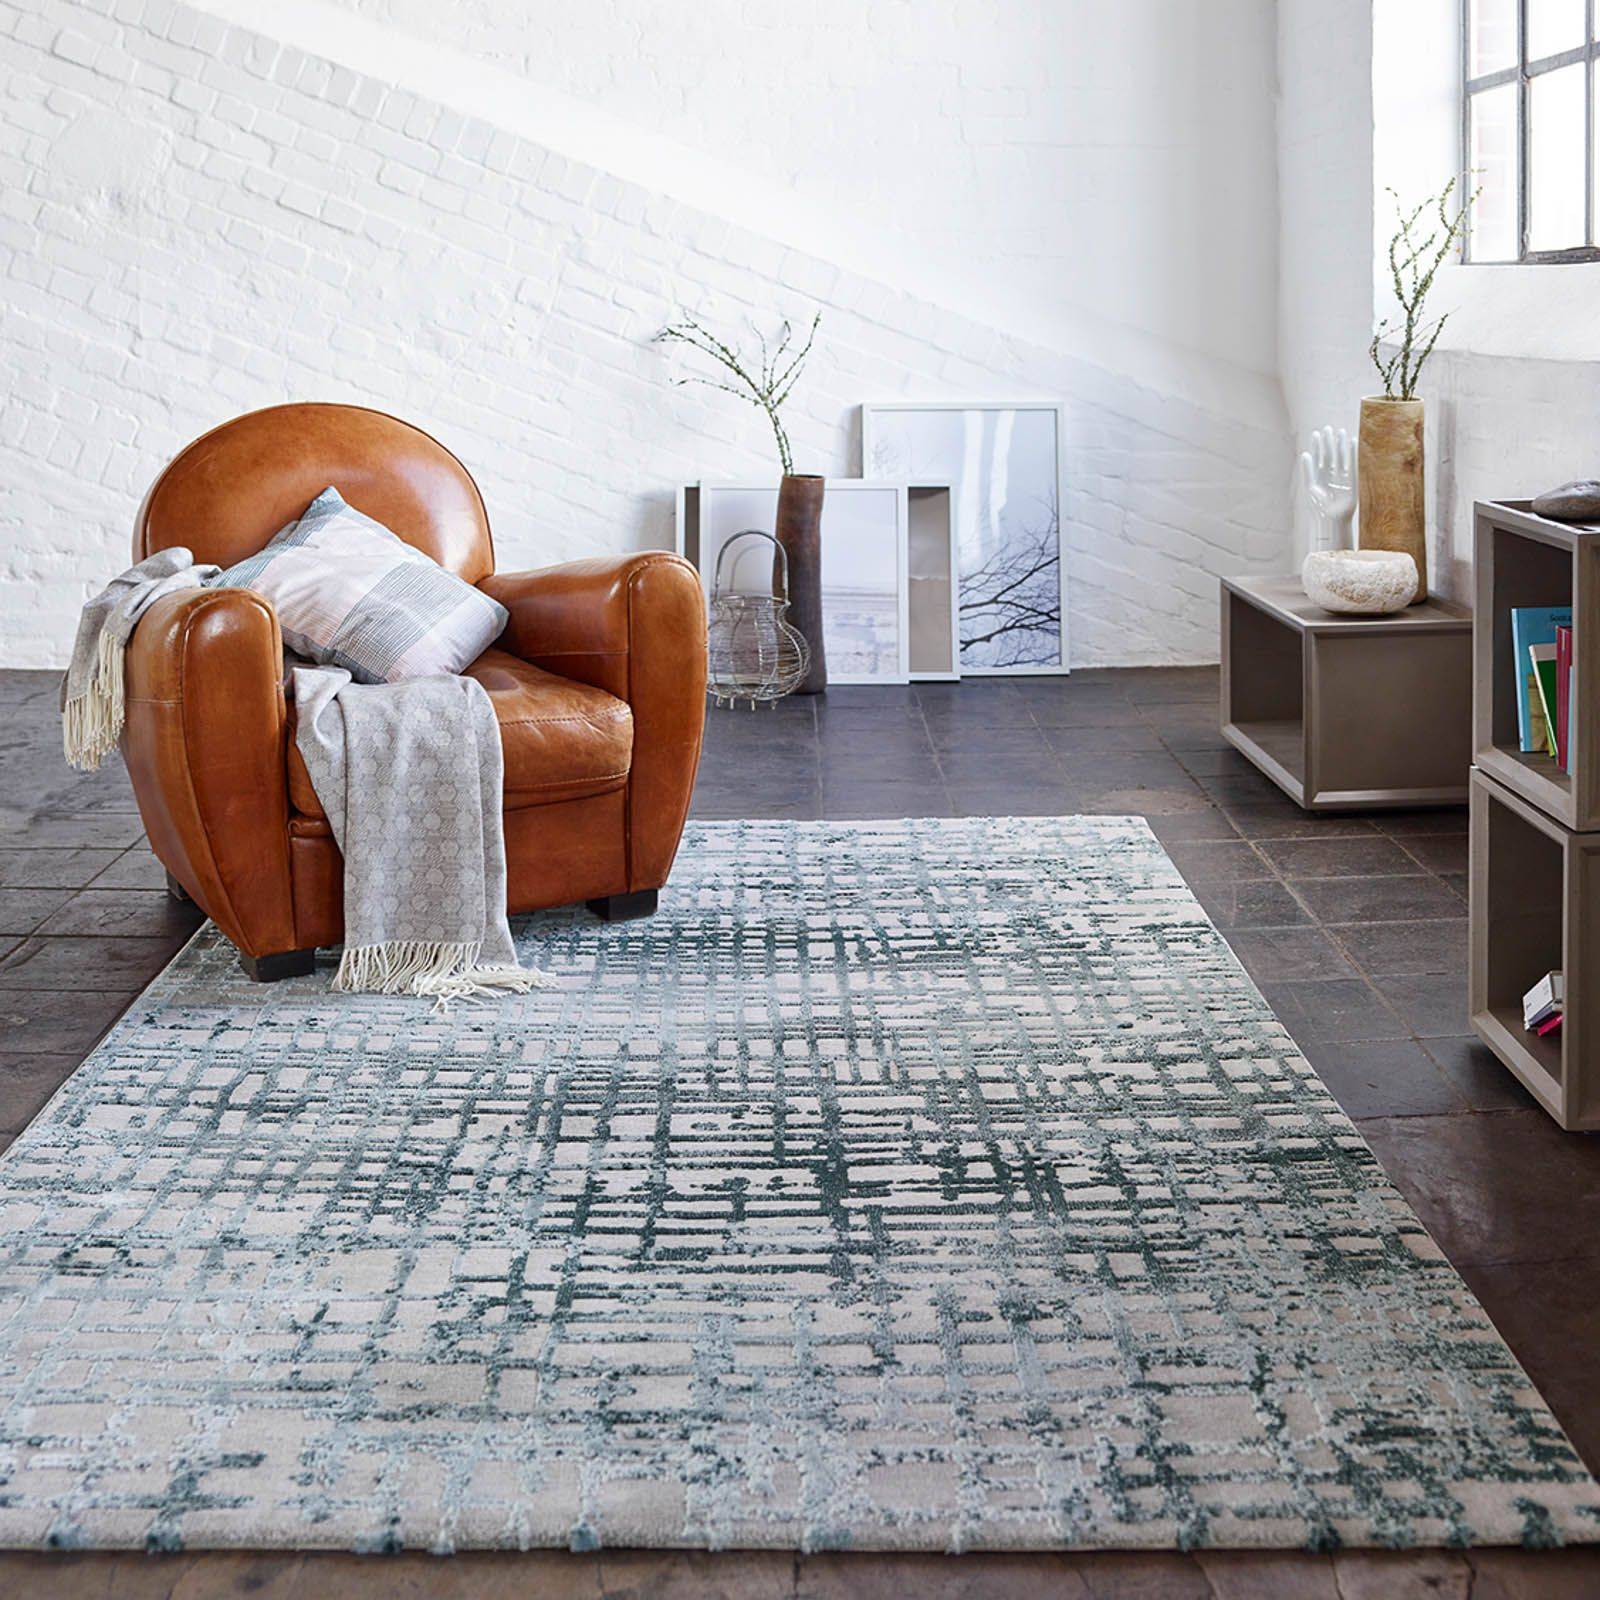 Velvet Grid Rugs 3385 953 By Esprit In Petrol Blue And Taupe Modern Rugs Uk Taupe Rug Blue Rug